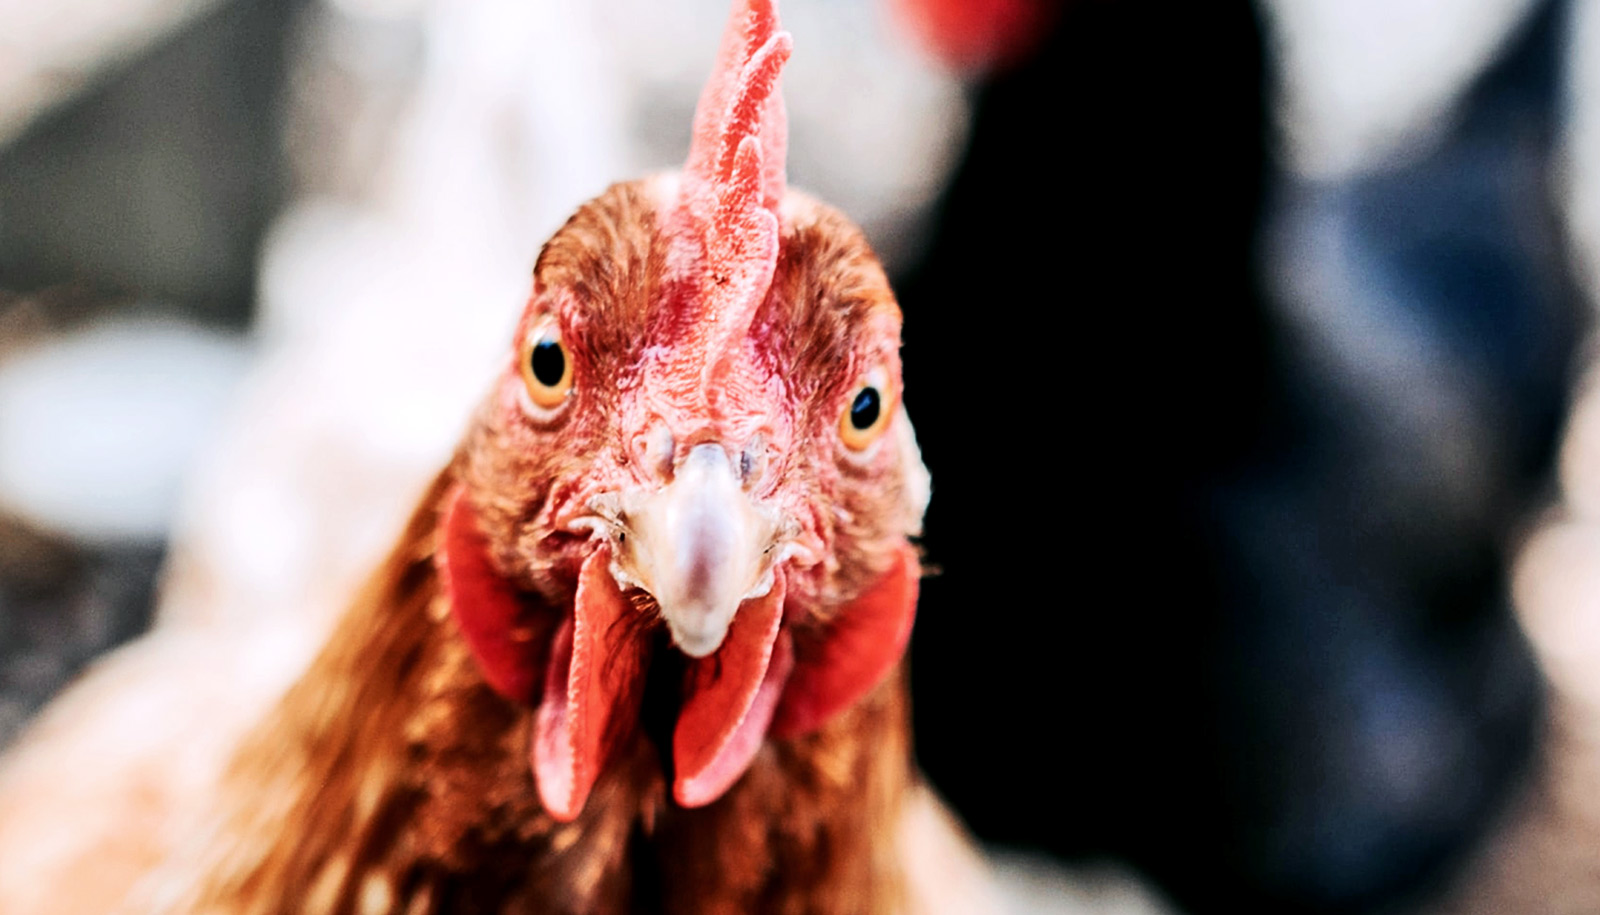 4 do's (and 1 don't) about keeping chickens in your yard